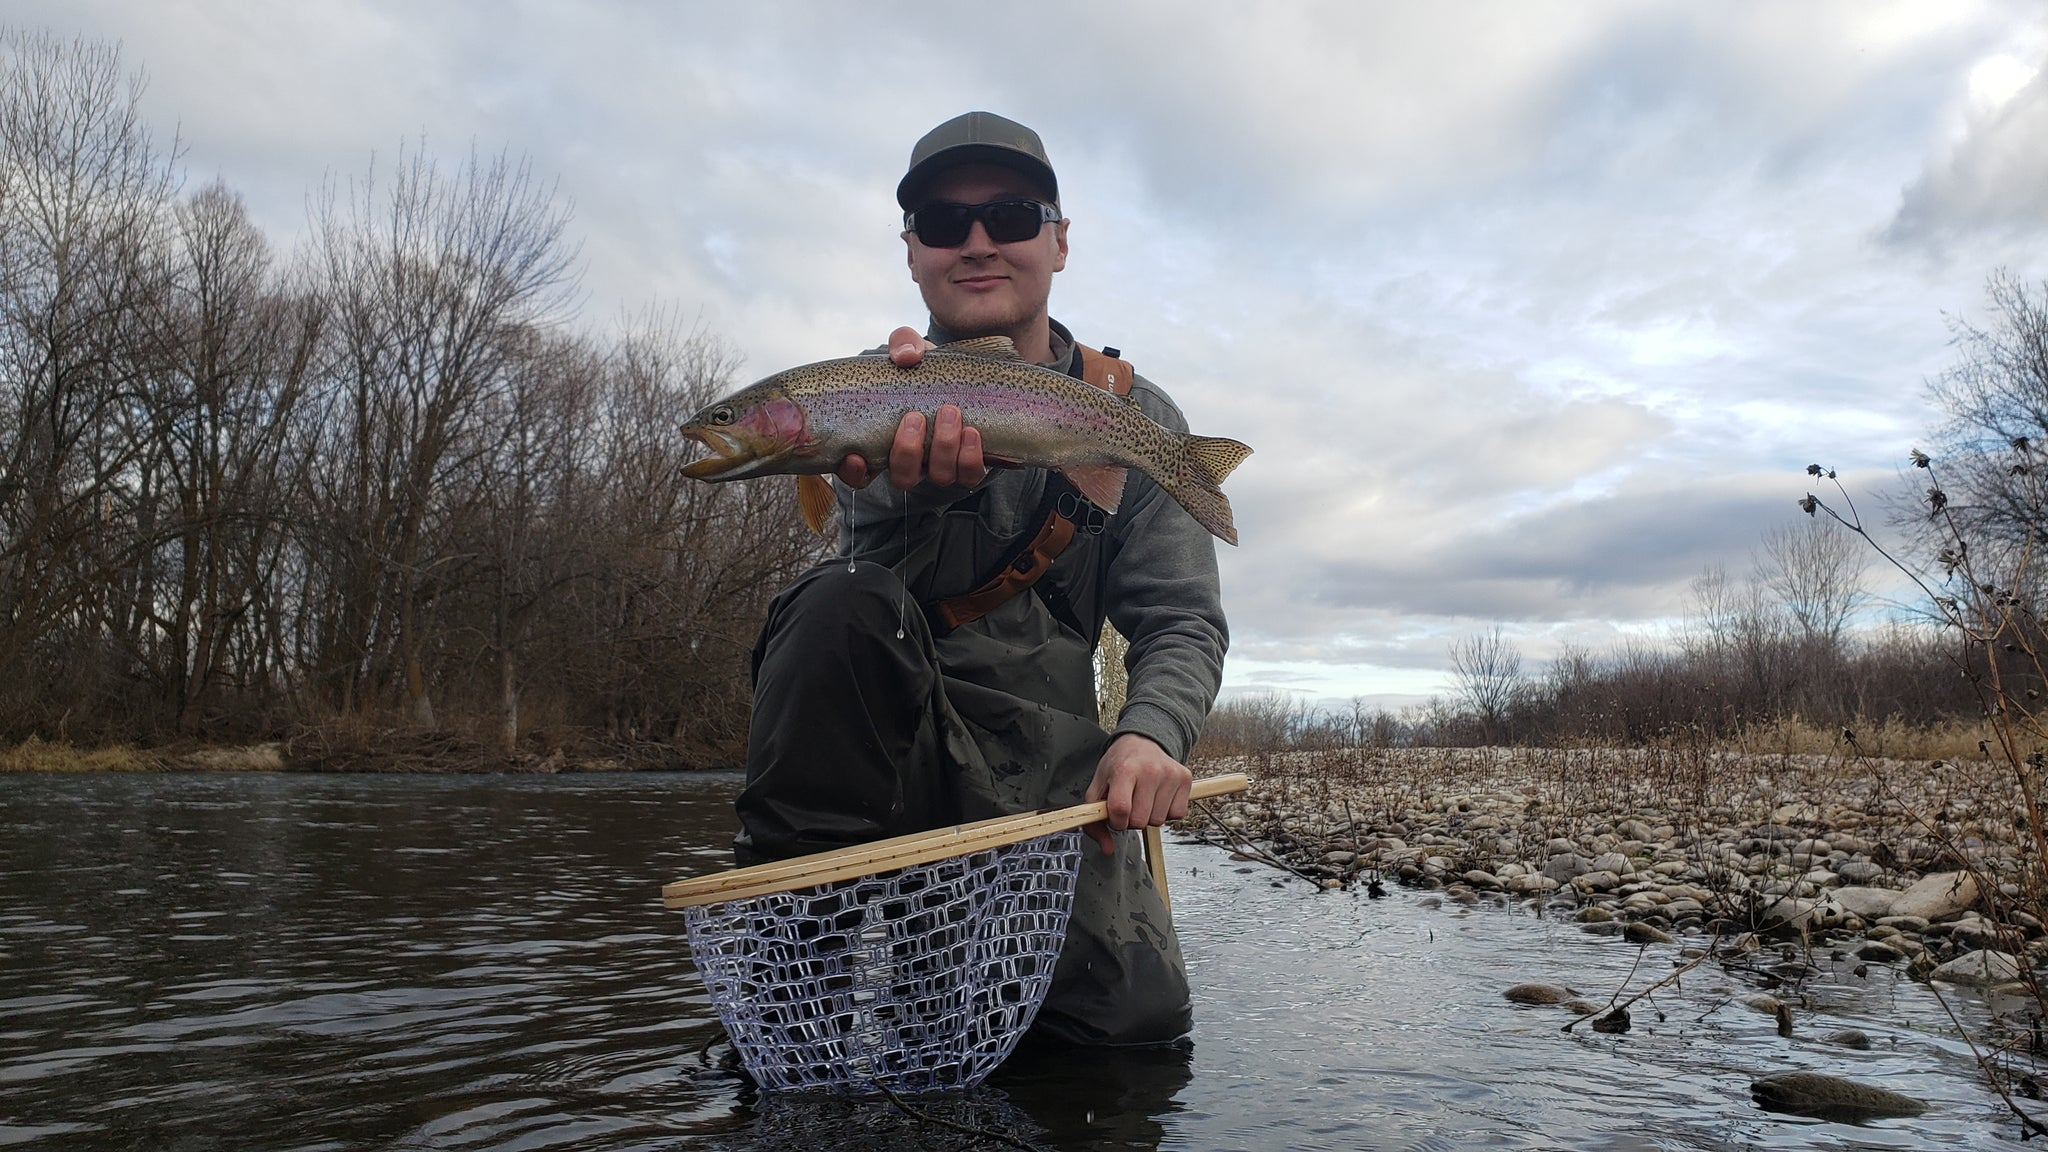 February Boise River Fishing Report - Week 2